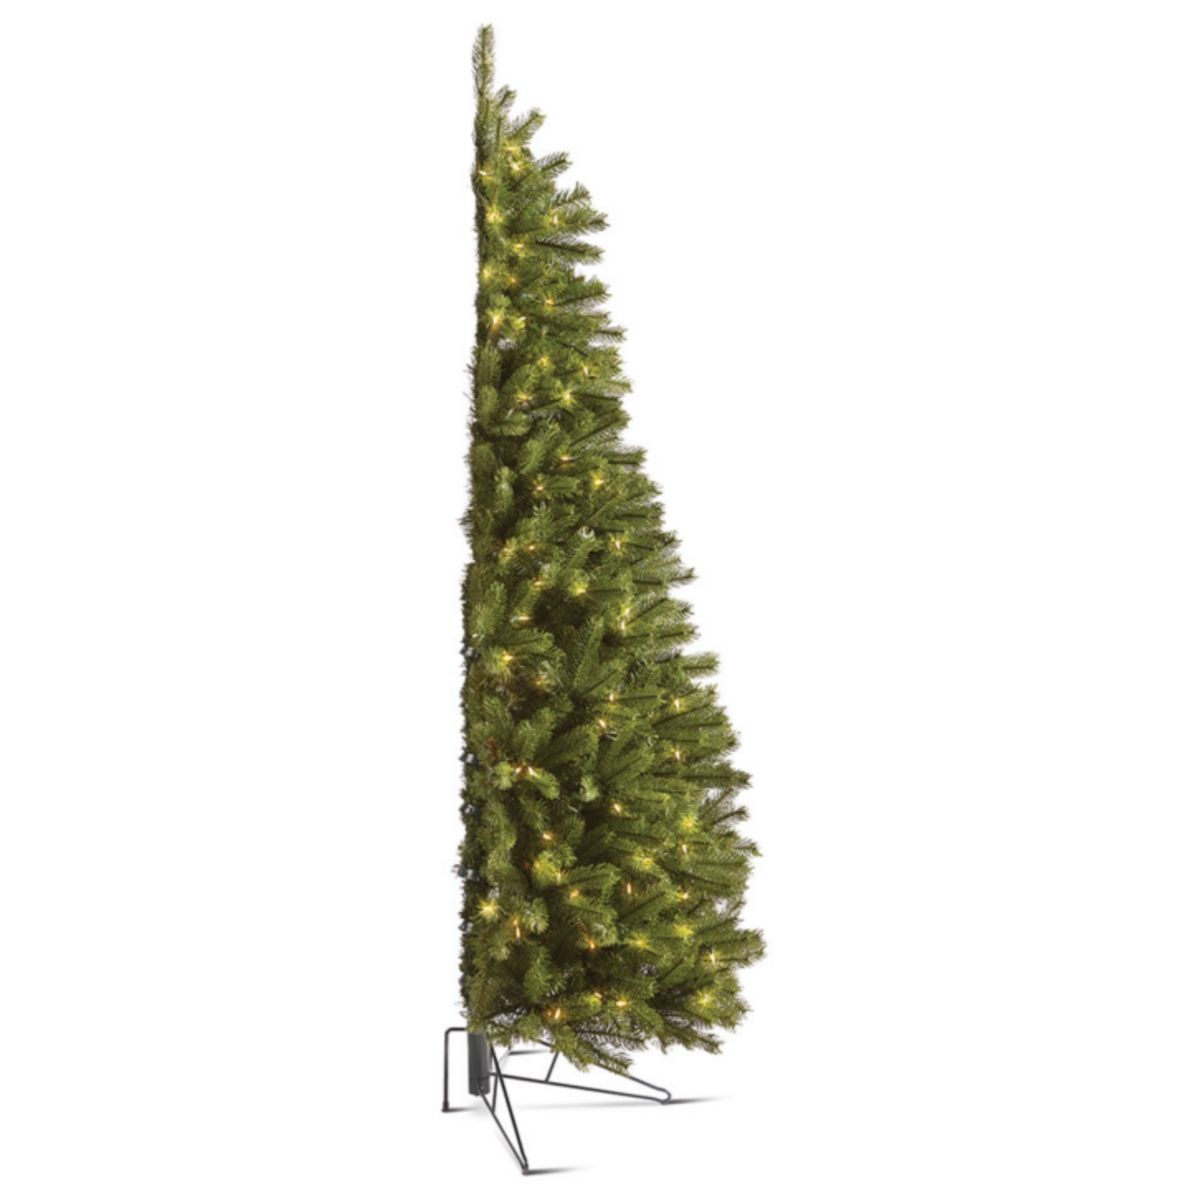 half-christmas trees exist for people who hate decorating the back